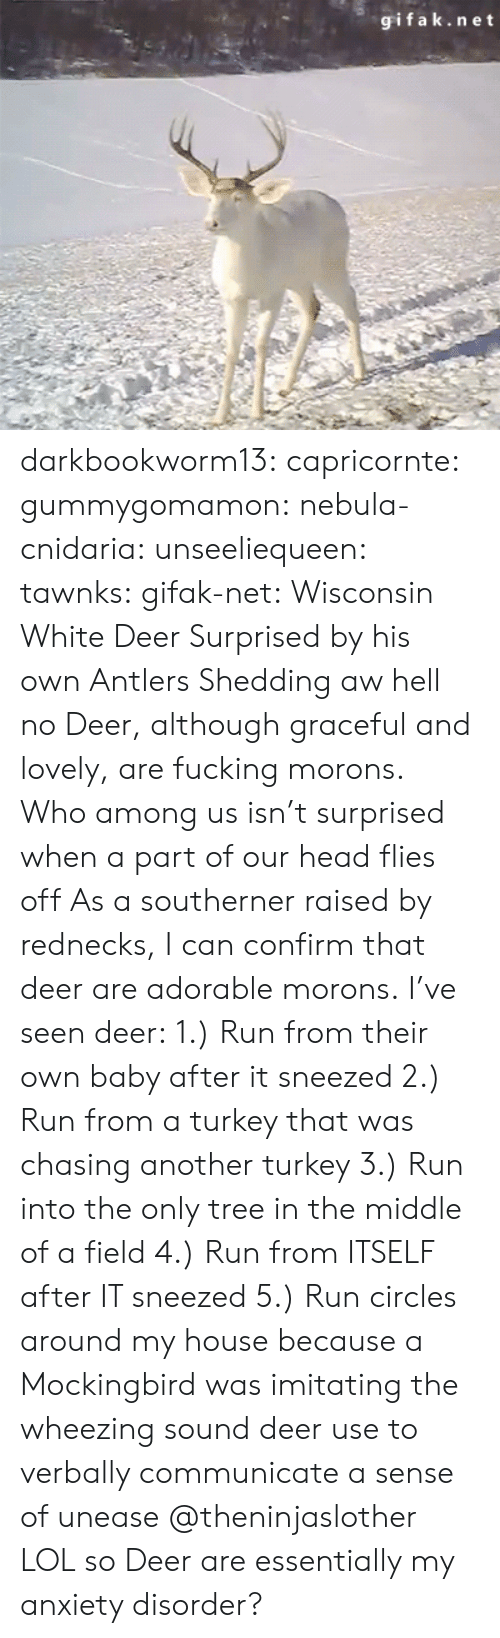 mockingbird: gifak.net darkbookworm13:  capricornte:  gummygomamon:  nebula-cnidaria:  unseeliequeen:  tawnks:  gifak-net:  Wisconsin White Deer Surprised by his own Antlers Shedding   aw hell no  Deer, although graceful and lovely, are fucking morons.   Who among us isn't surprised when a part of our head flies off   As a southerner raised by rednecks, I can confirm that deer are adorable morons. I've seen deer: 1.) Run from their own baby after it sneezed 2.) Run from a turkey that was chasing another turkey 3.) Run into the only tree in the middle of a field 4.) Run from ITSELF after IT sneezed 5.) Run circles around my house because a Mockingbird was imitating the  wheezing sound deer use to verbally communicate a sense of unease   @theninjaslother  LOL so Deer are essentially my anxiety disorder?